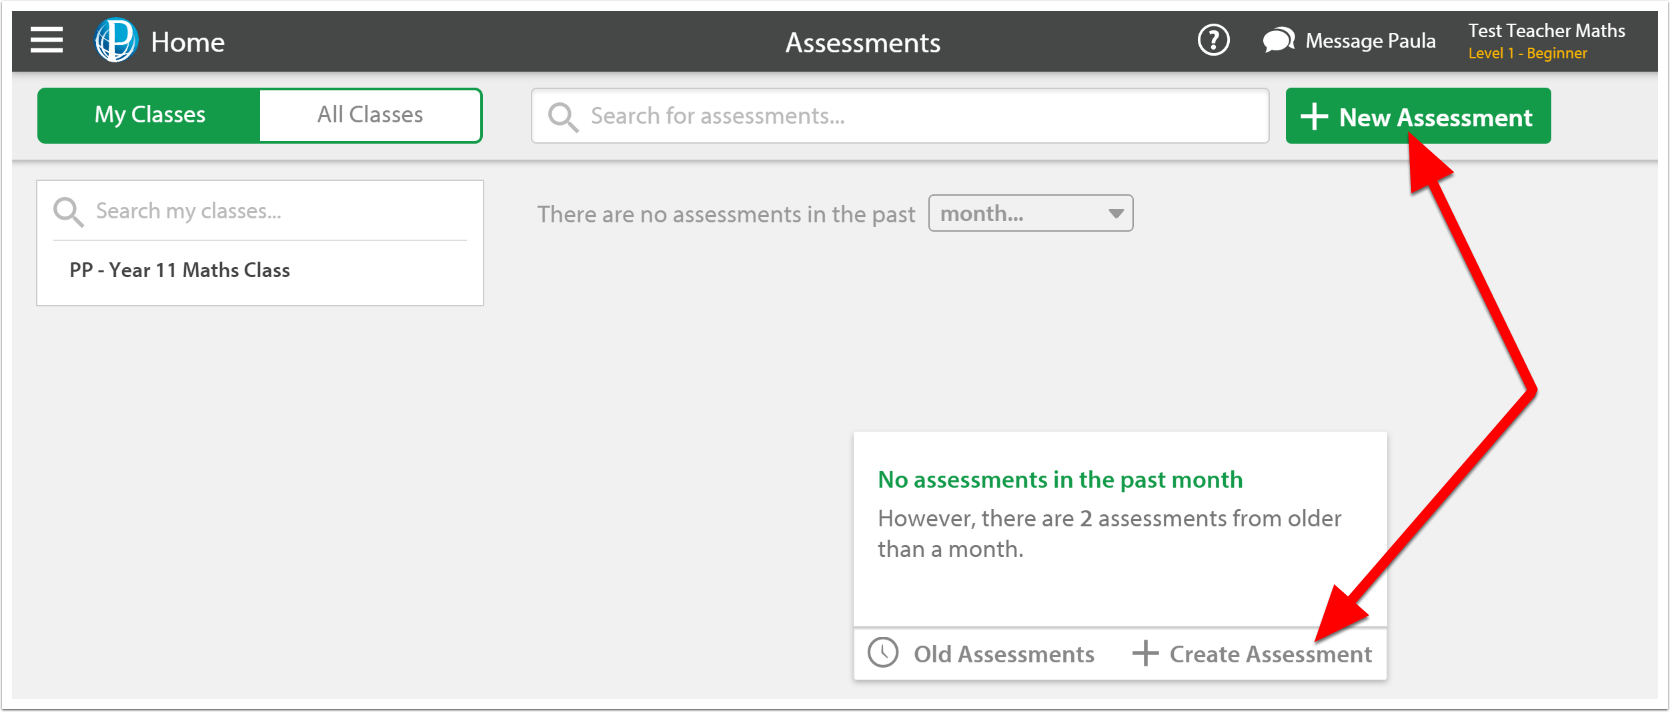 Select the 'New Assessment' button.